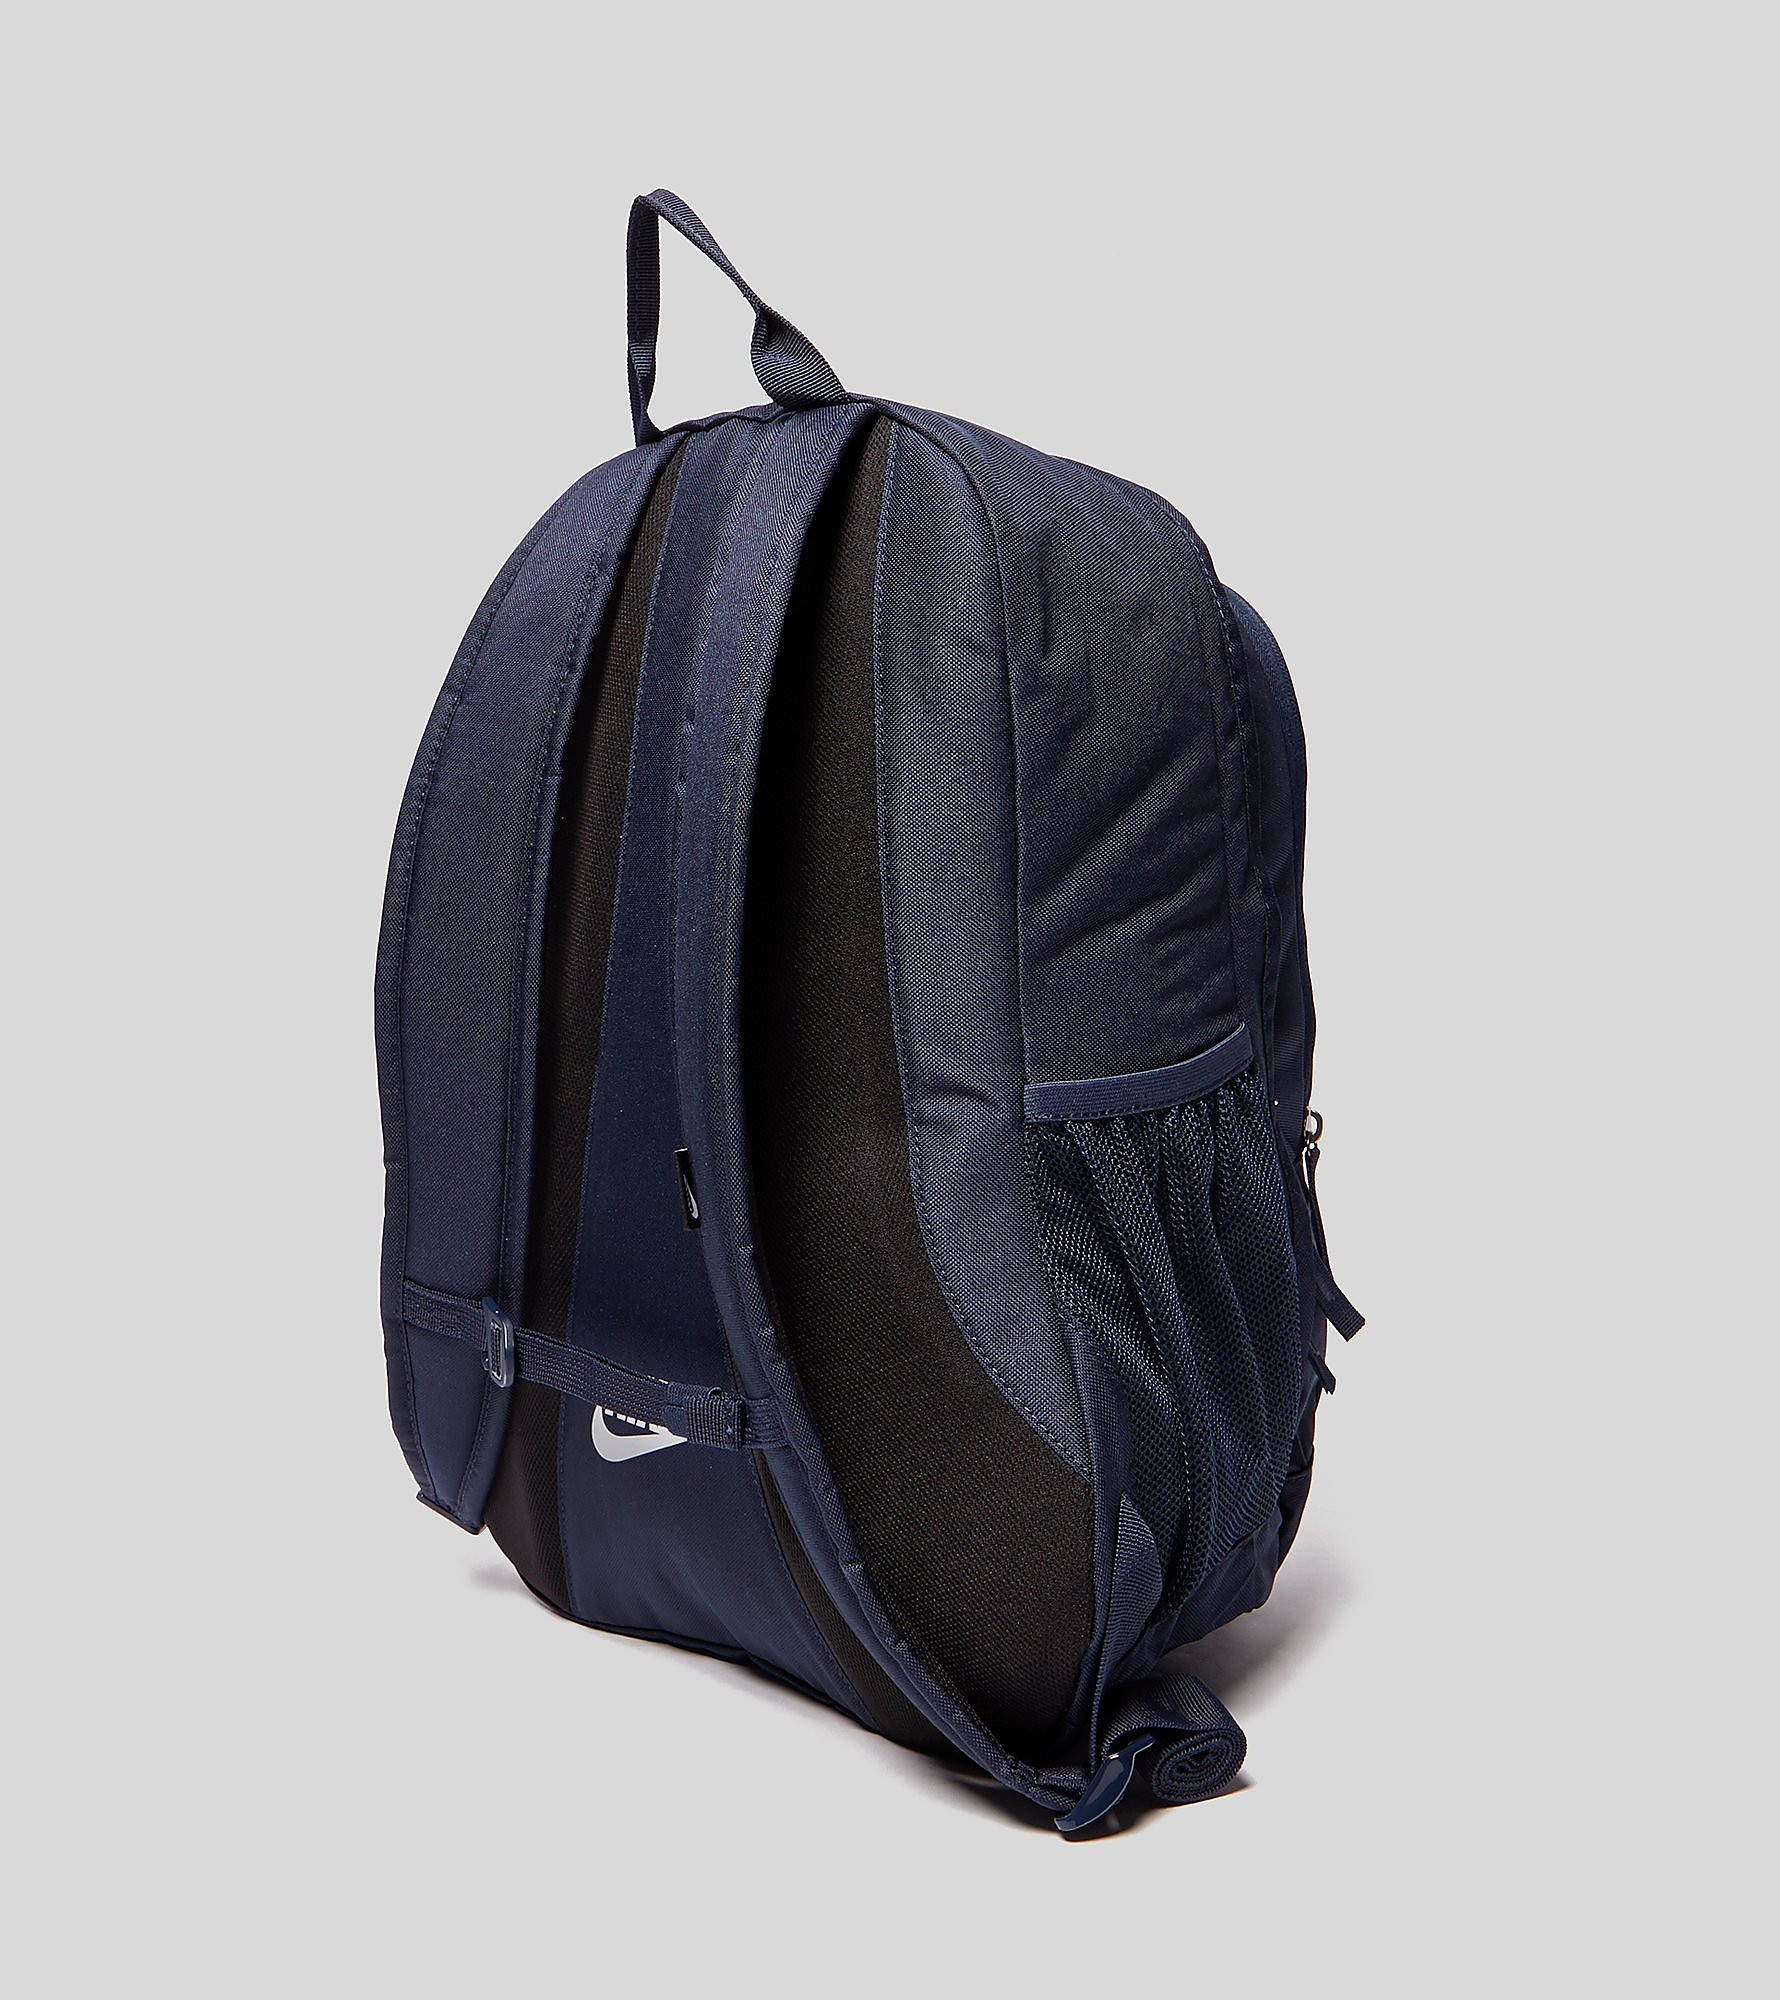 Nike Futura Backpack